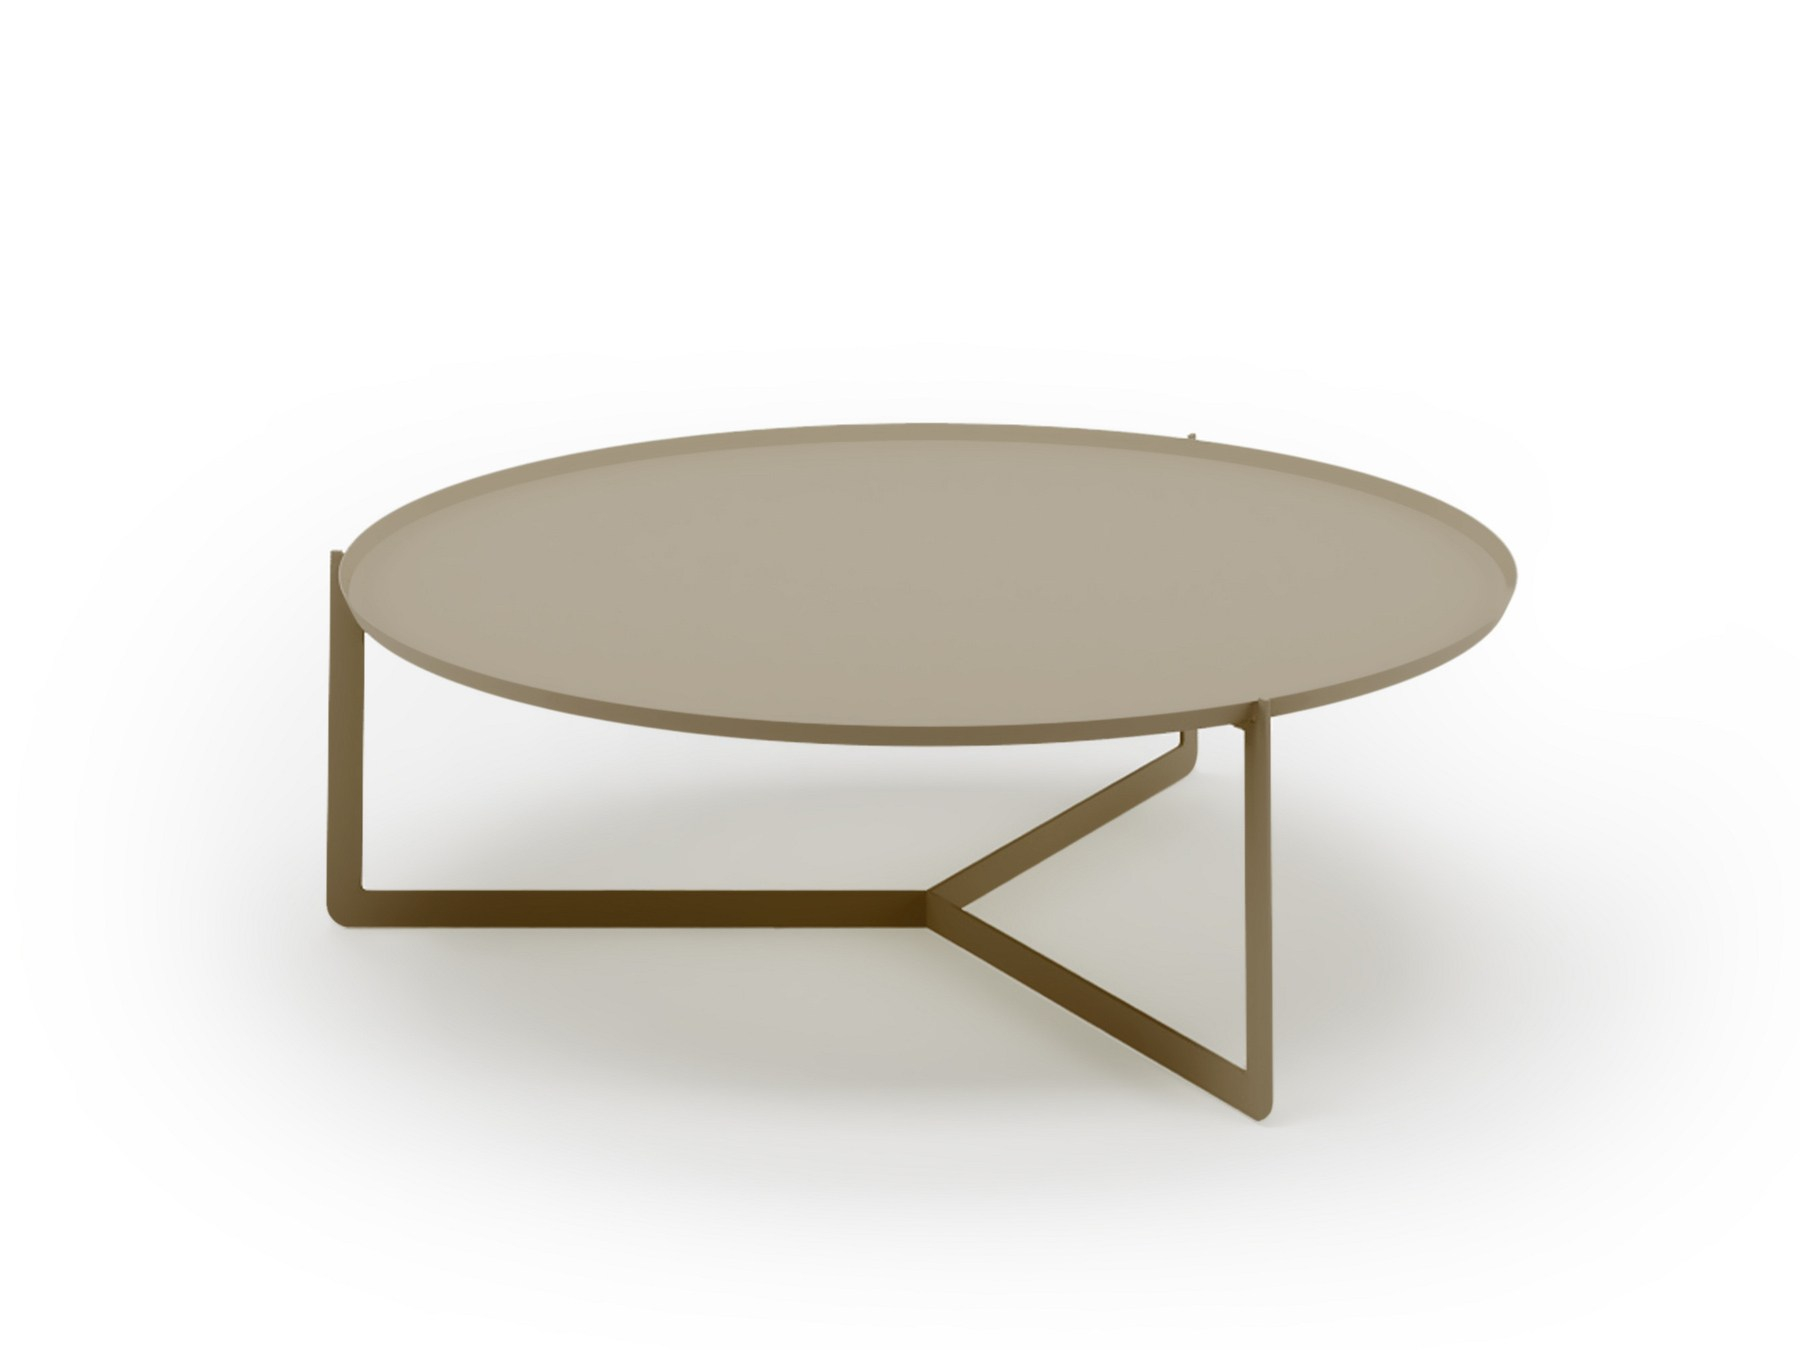 Glass Top Round Glass Top Coffee Table With Metal Base Buethe Org